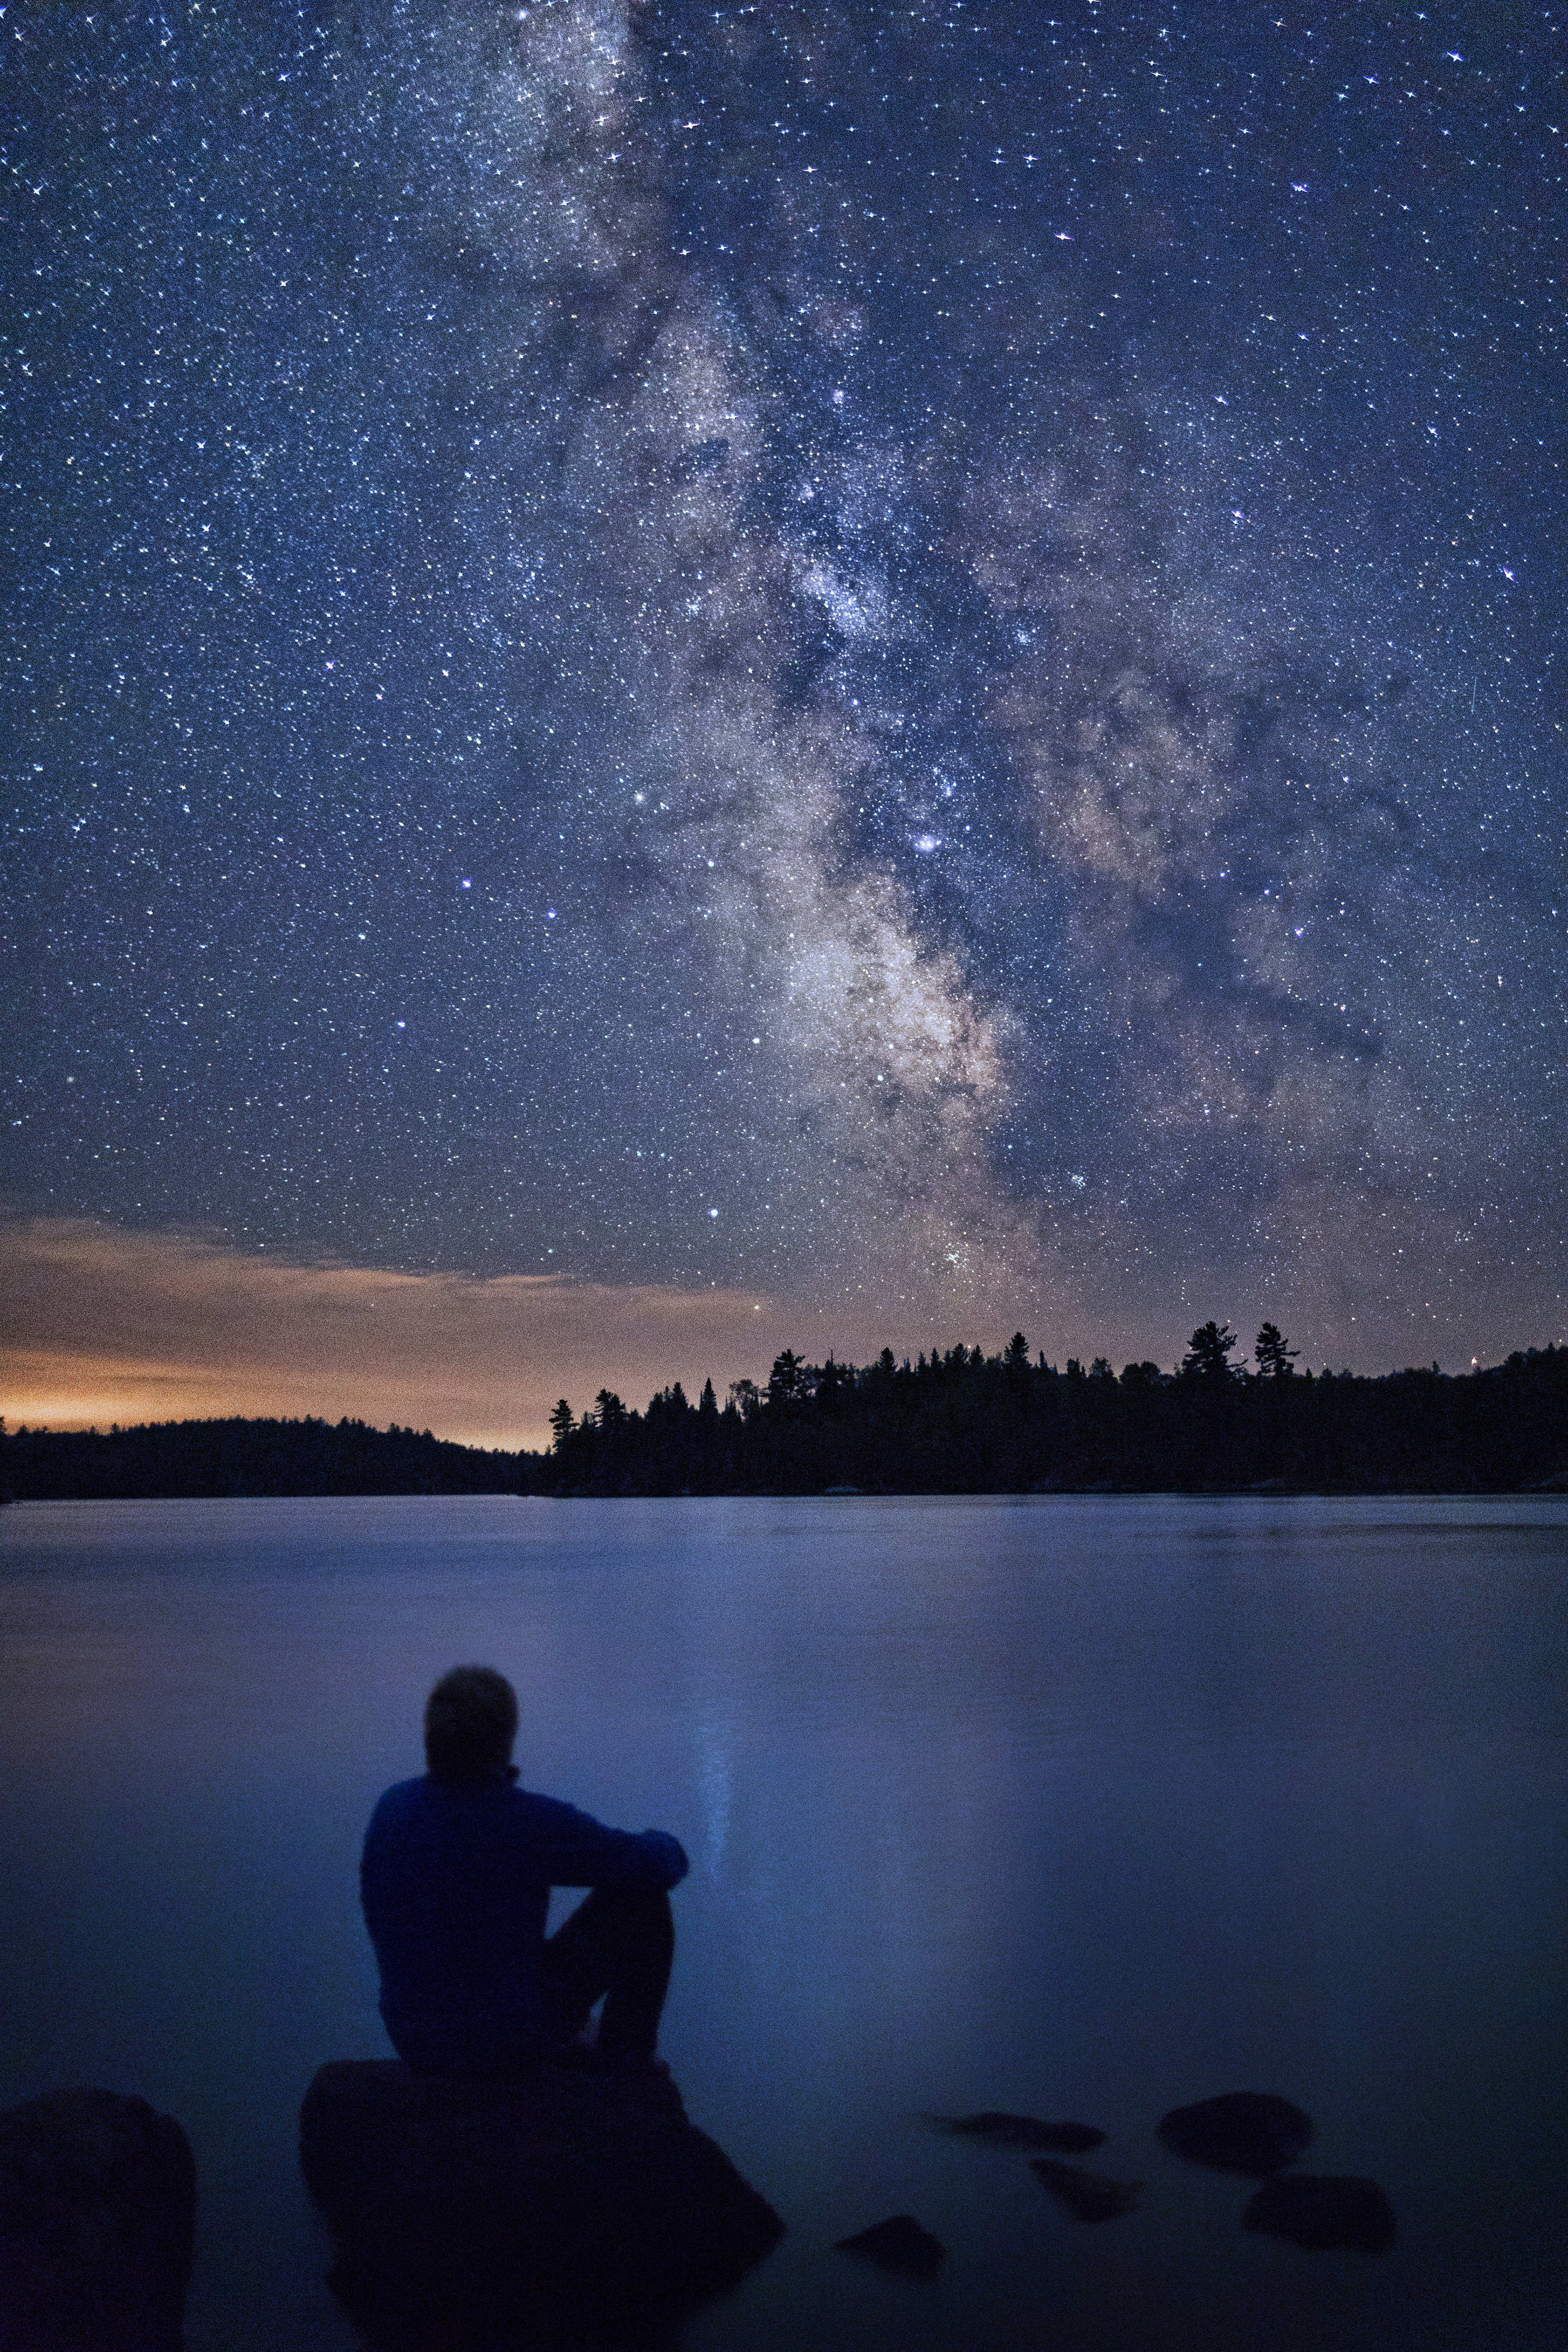 A man sits on a large boulder while looking out onto the dark and starry skies of Voyageurs national park.